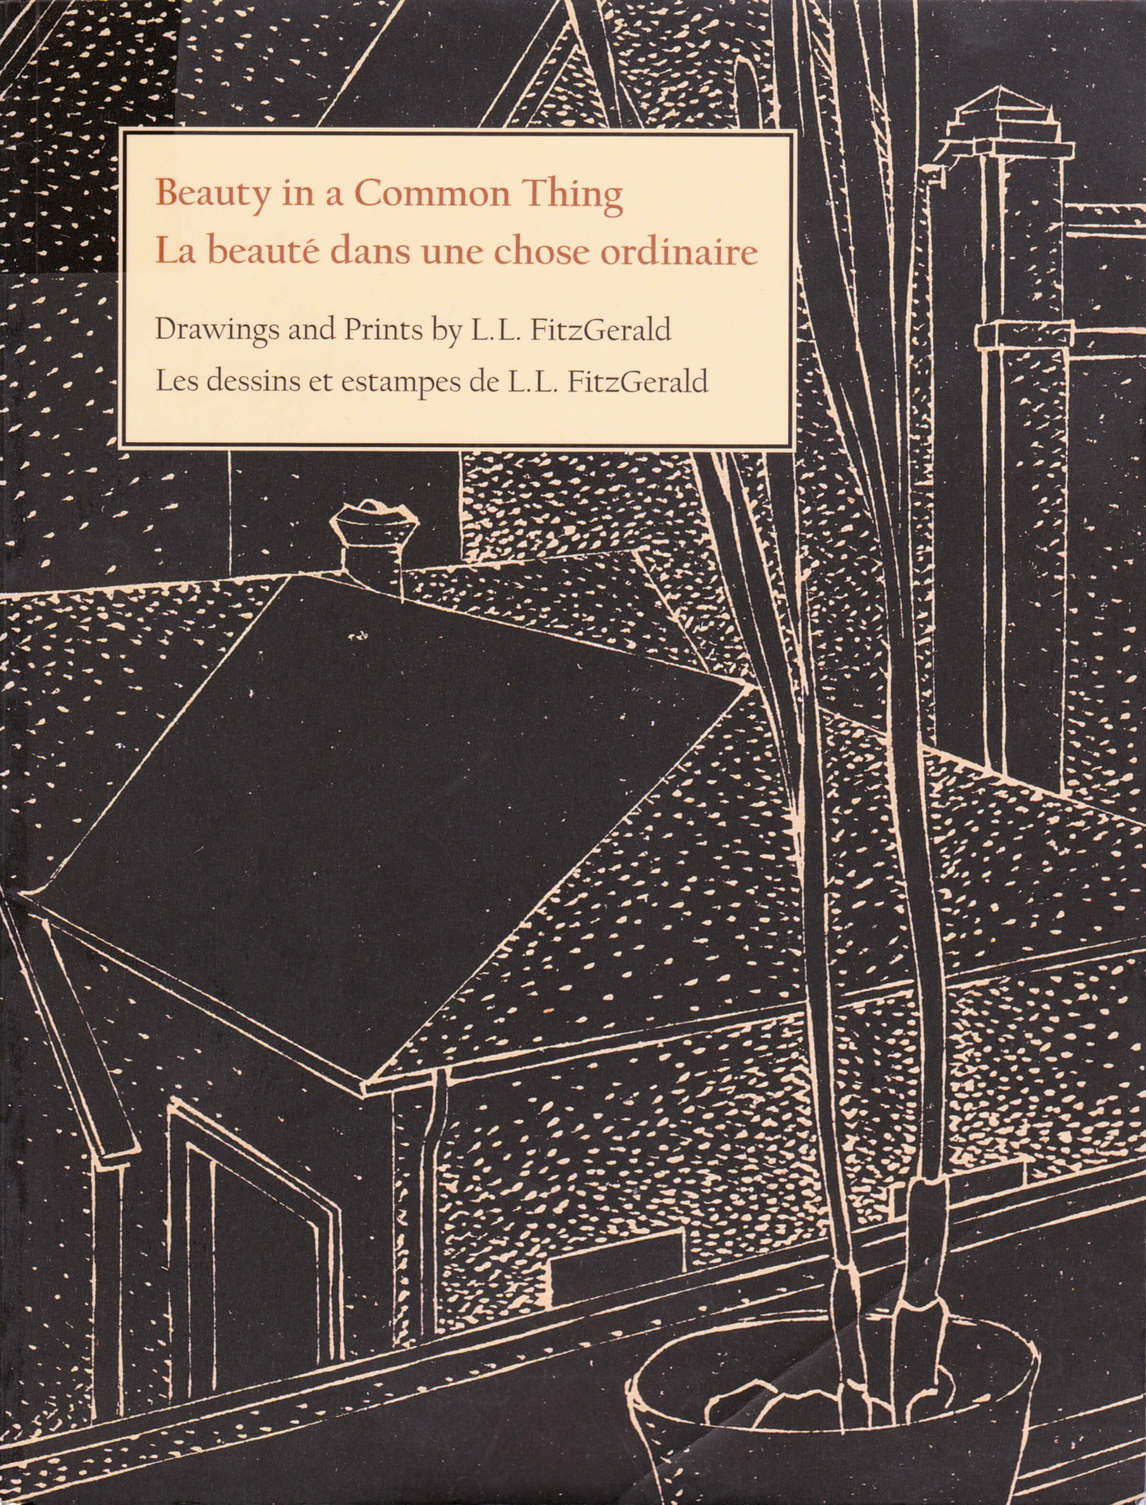 Art Canada Institute, Cover of exhibition catalogue Beauty in a Common Thing: Drawings and Prints by L.L. FitzGerald (Ottawa: National Gallery of Canada, 2004)